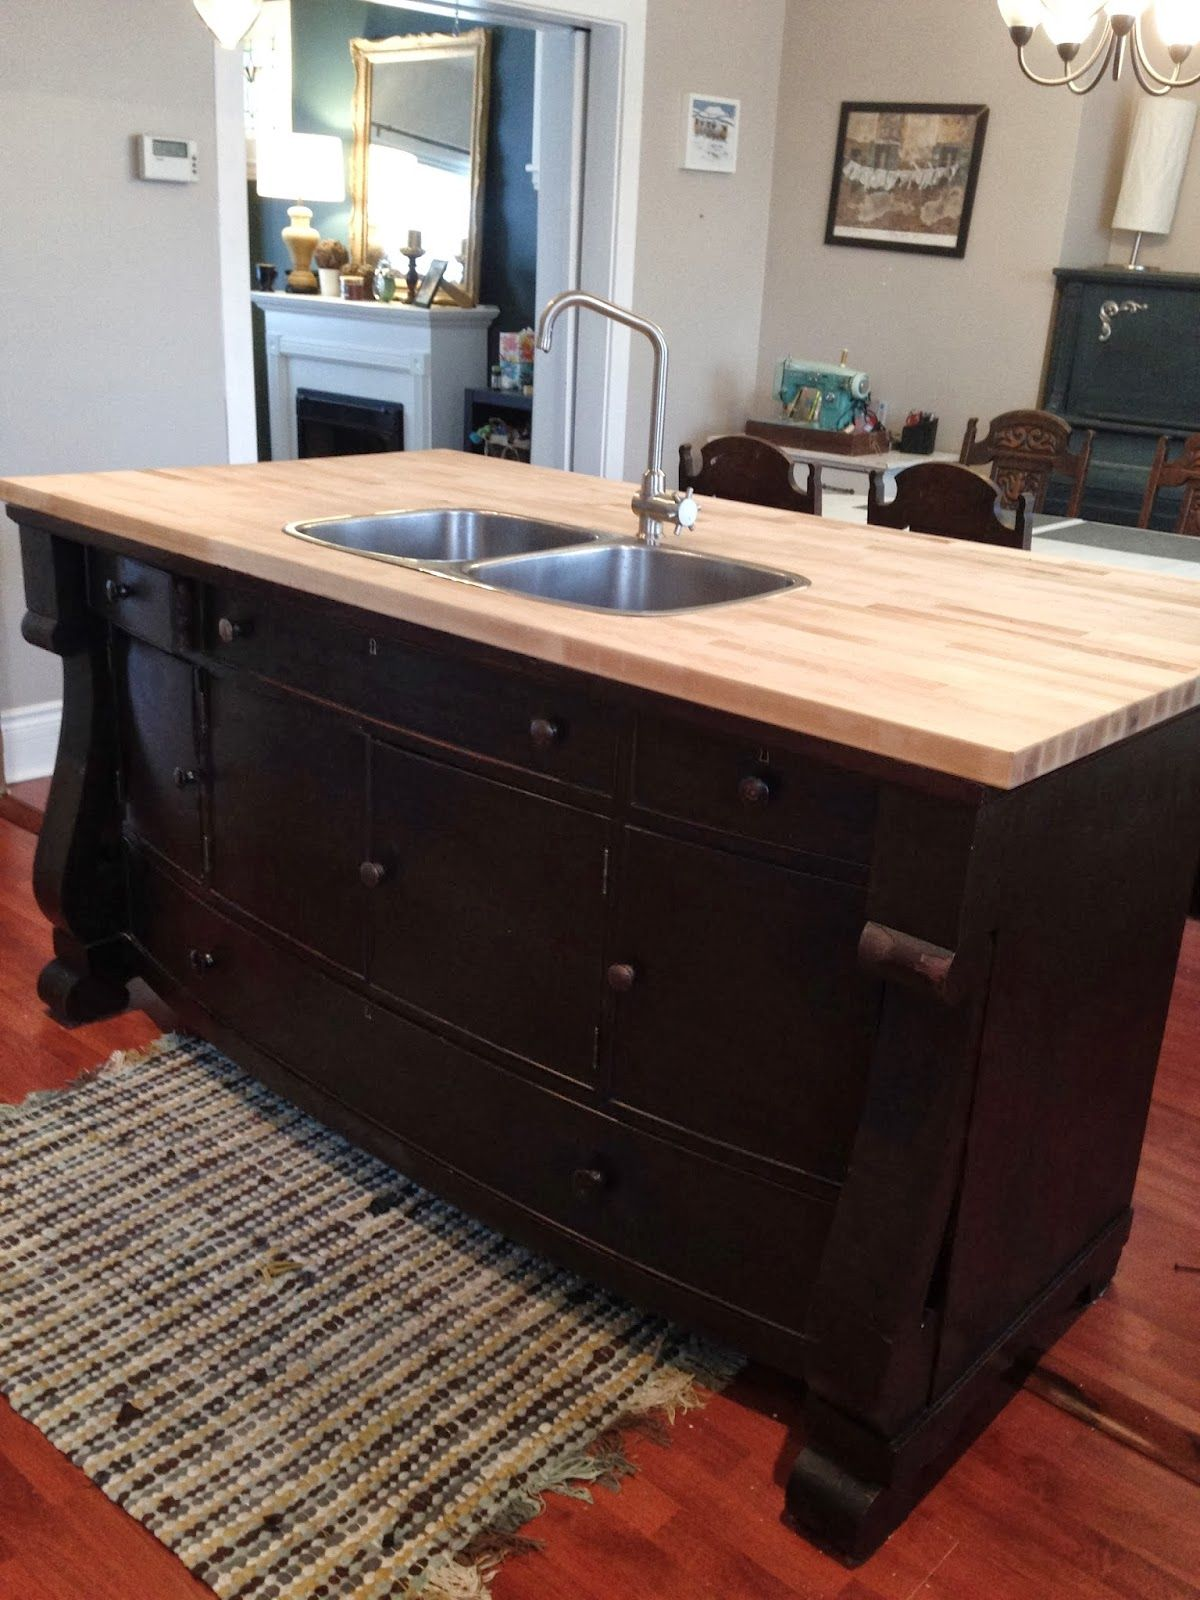 Repurposed Gems Our Kitchen Dresser Kitchen Island Kitchen Sink Diy Repurposed Dresser